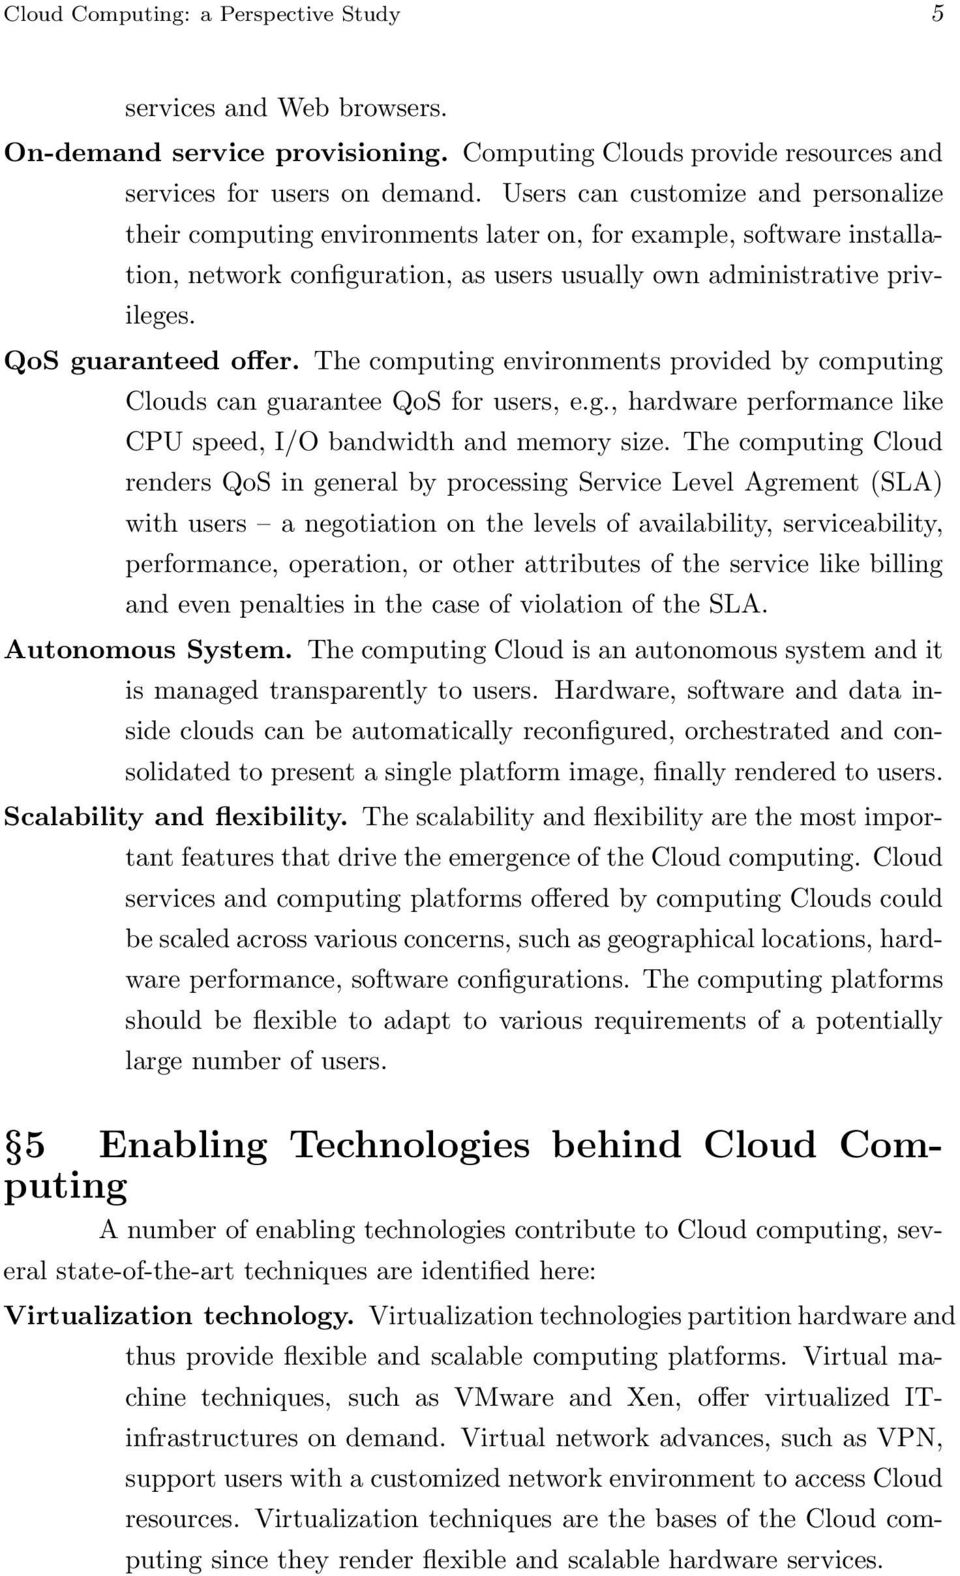 QoS guaranteed offer. The computing environments provided by computing Clouds can guarantee QoS for users, e.g., hardware performance like CPU speed, I/O bandwidth and memory size.